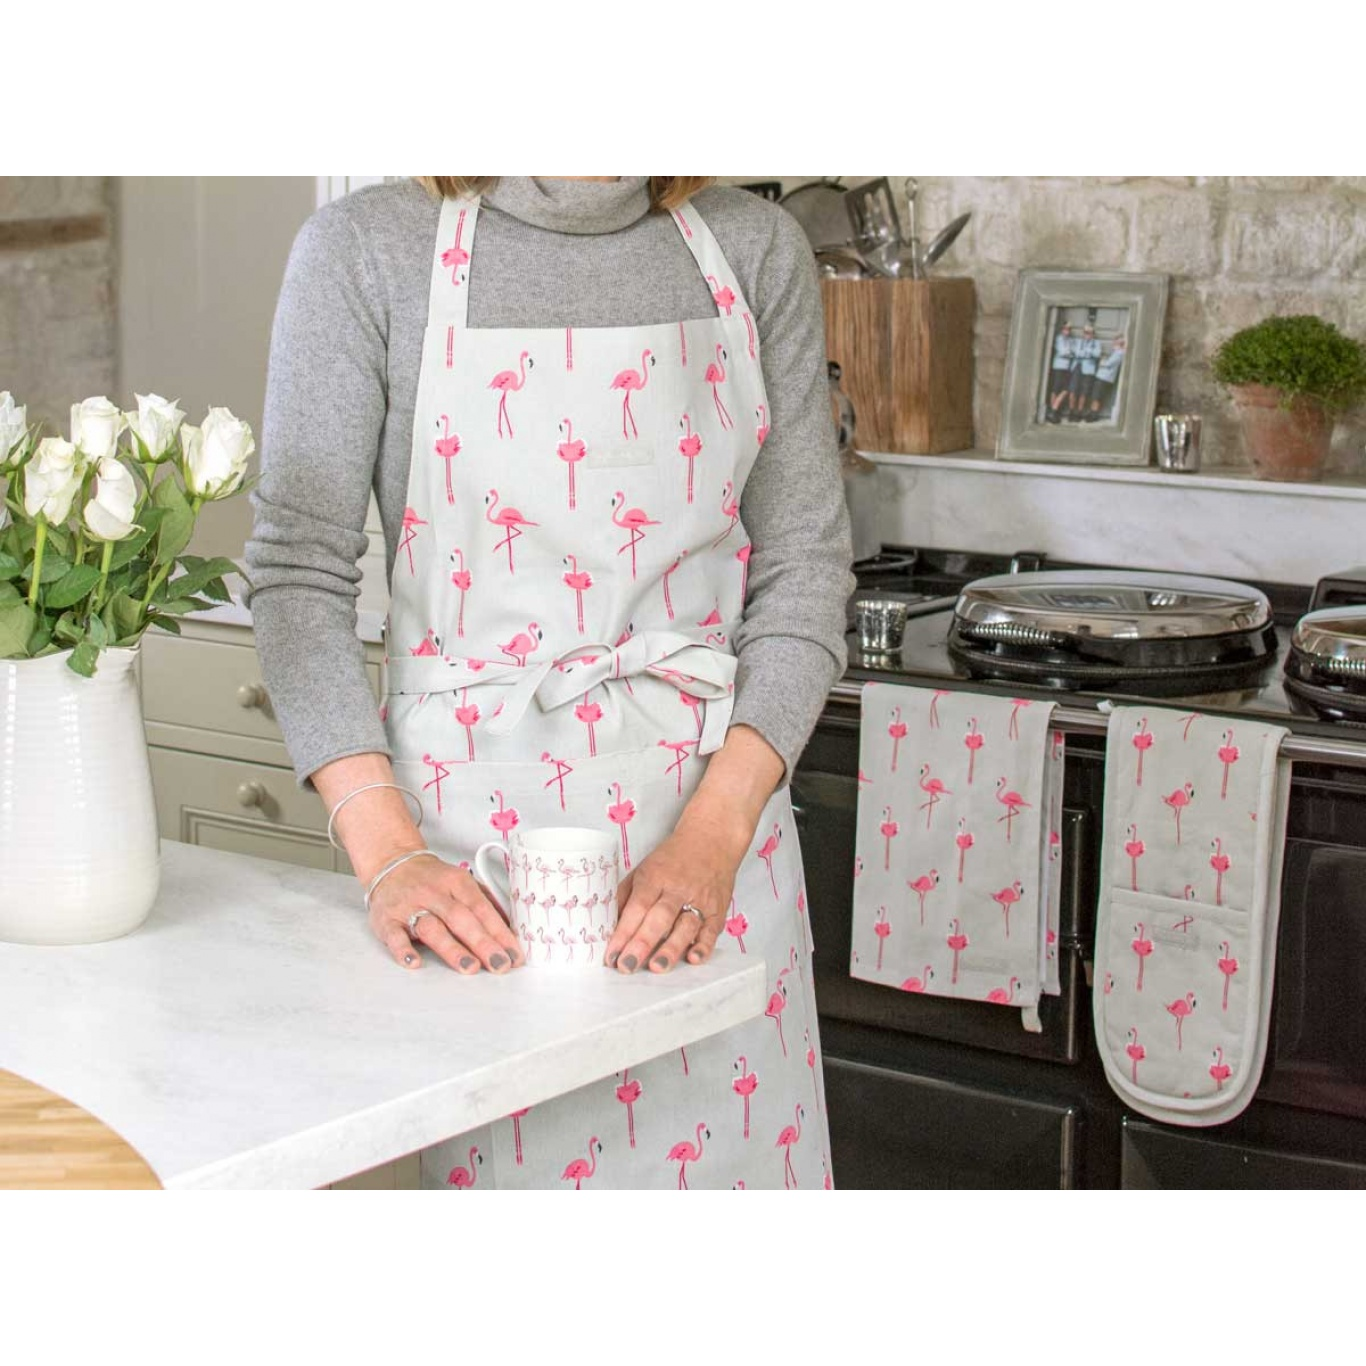 Sophie Allport Flamingos Tea Towel